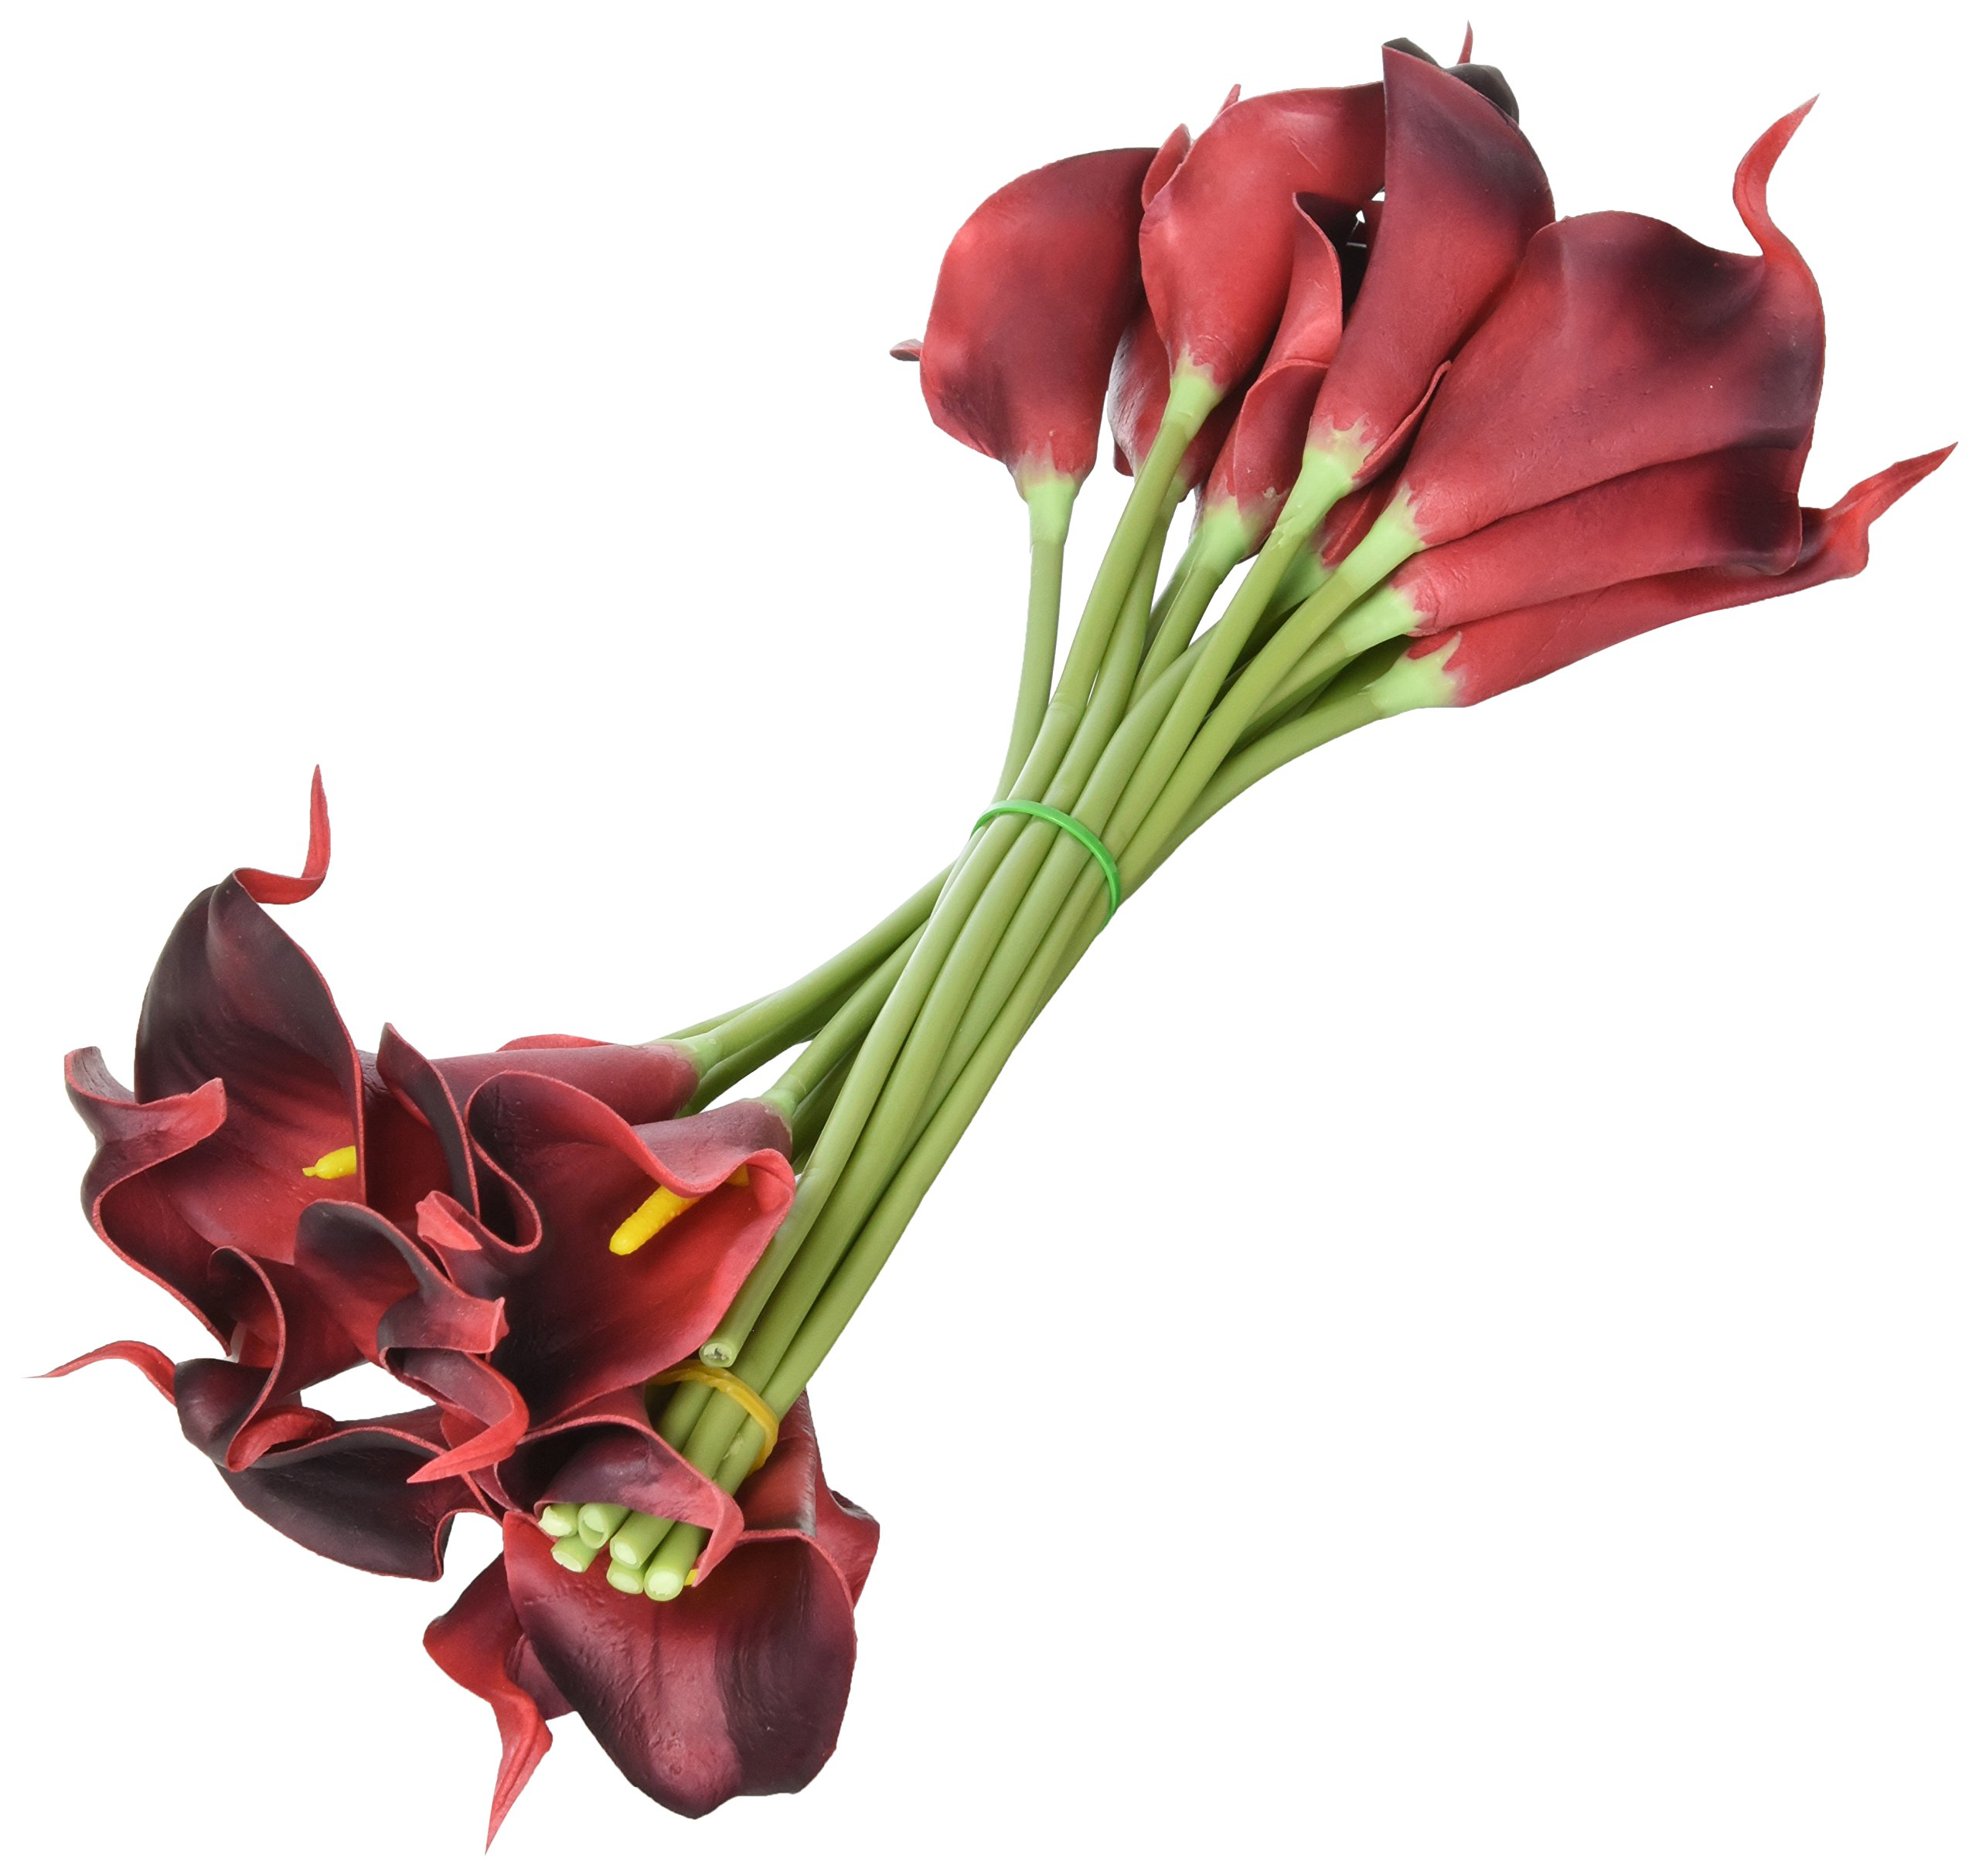 Luyue Calla Lily Bridal Wedding Bouquet Head Lataex Real Touch